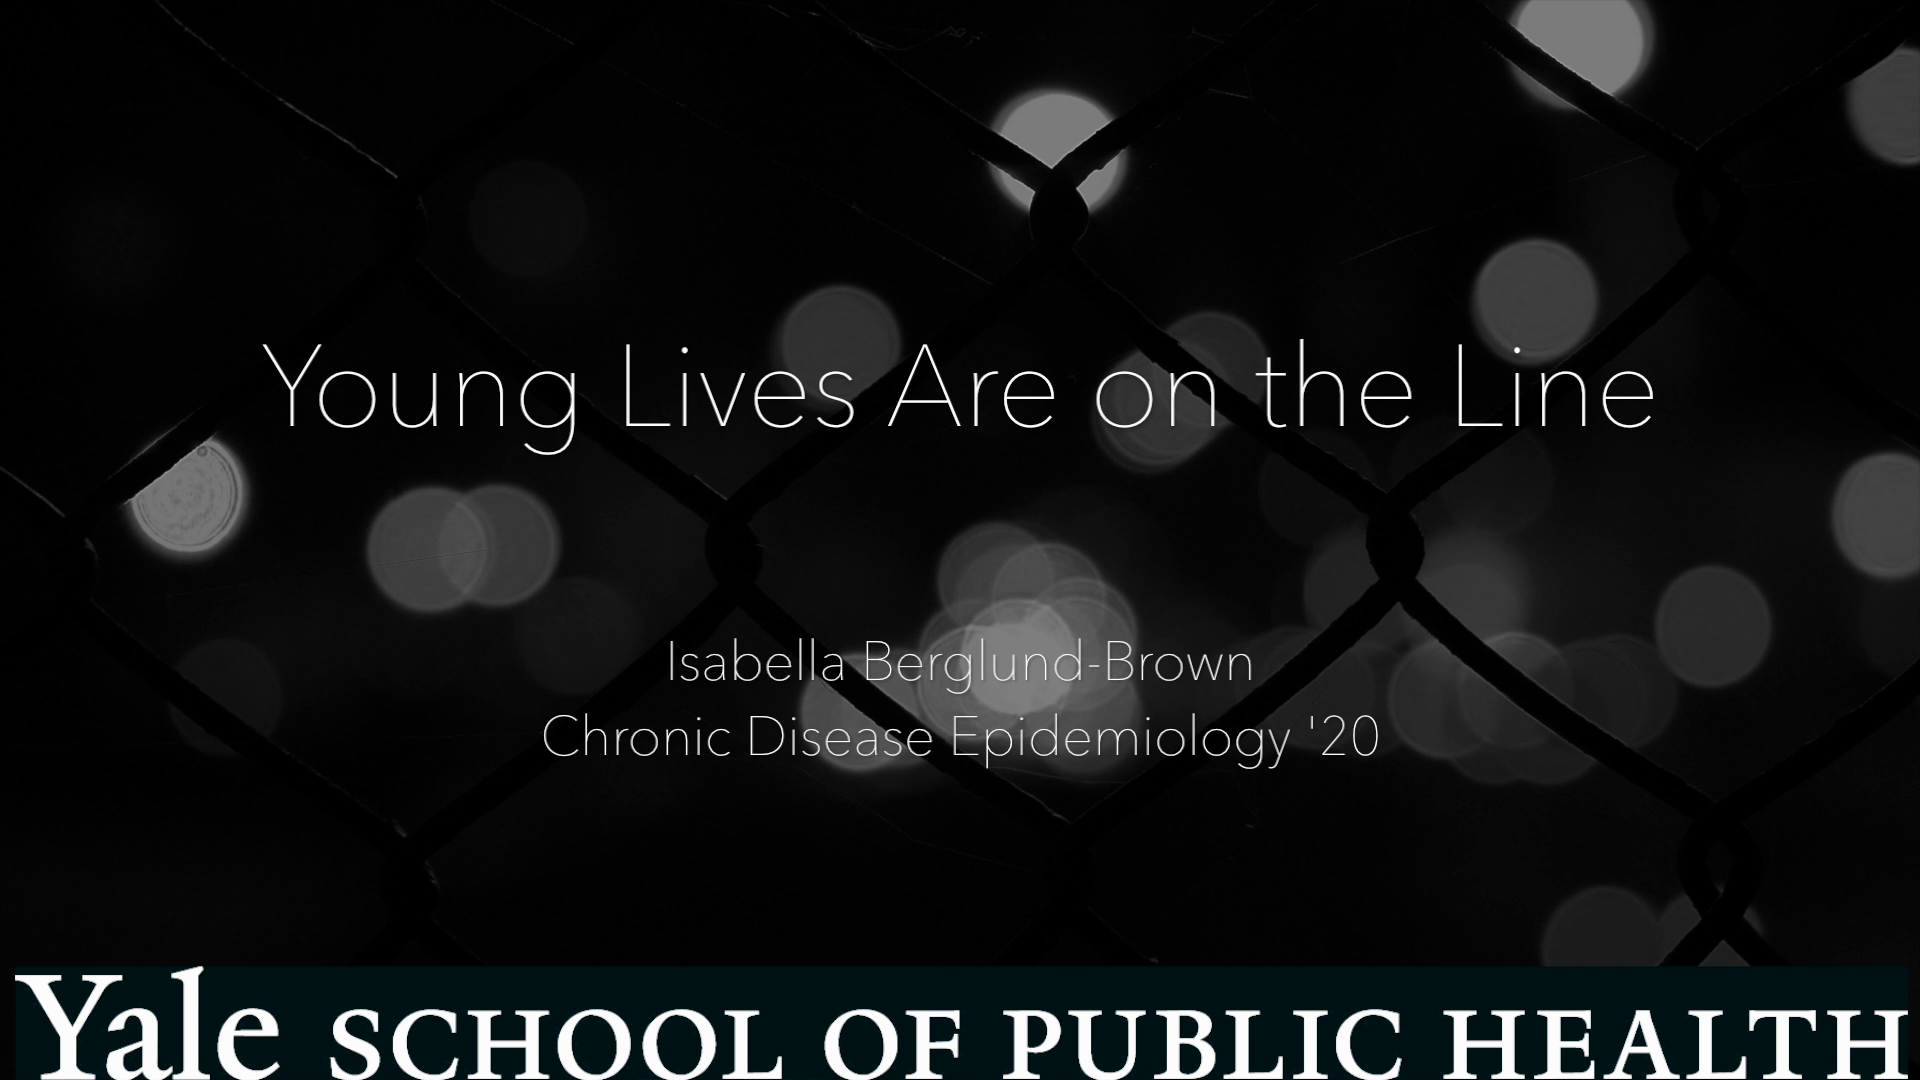 Young Lives Are on the Line